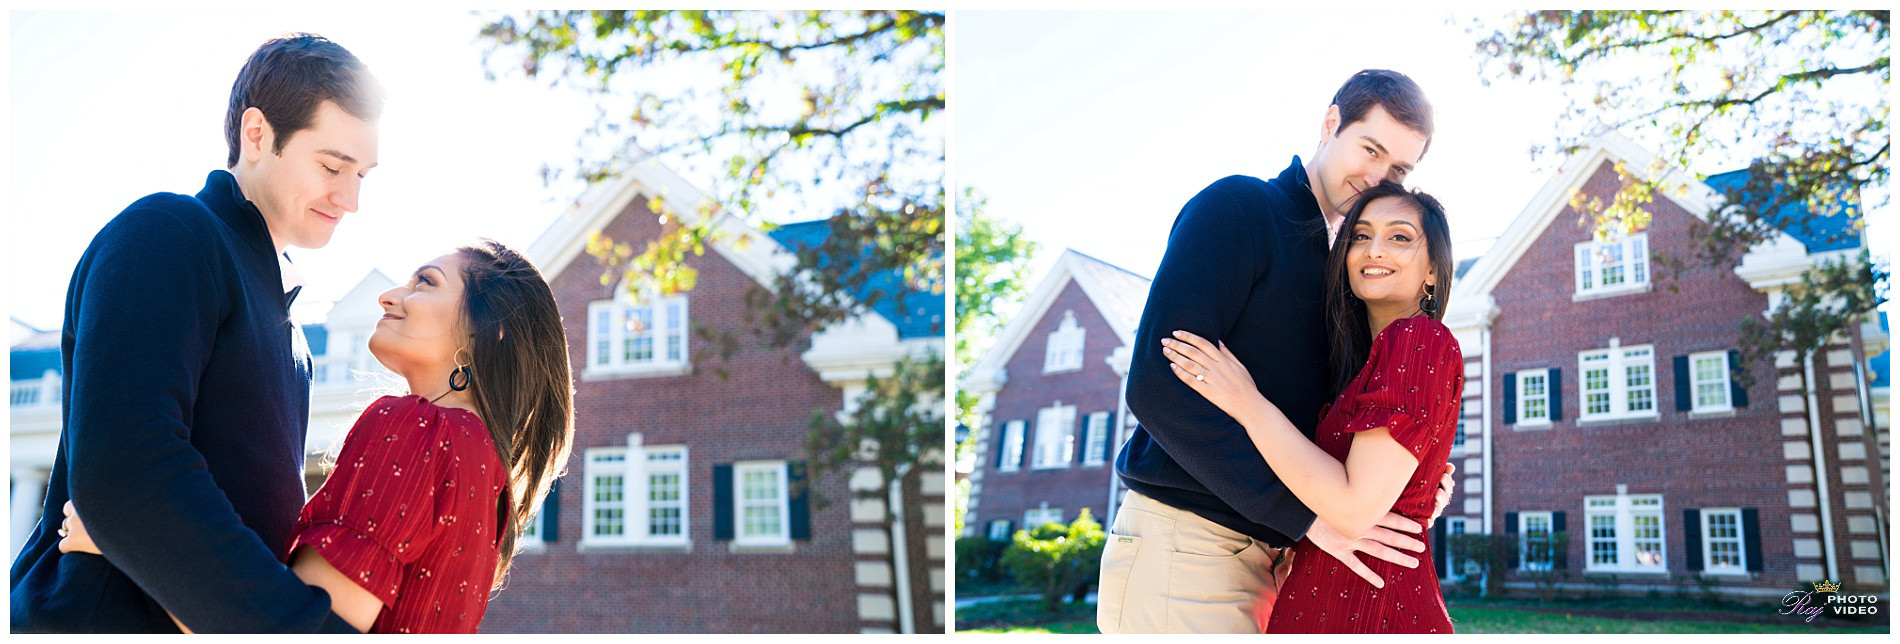 The-College-of-New-Jersey-Engagement-Shoot-Prerna-Kevin17.jpg